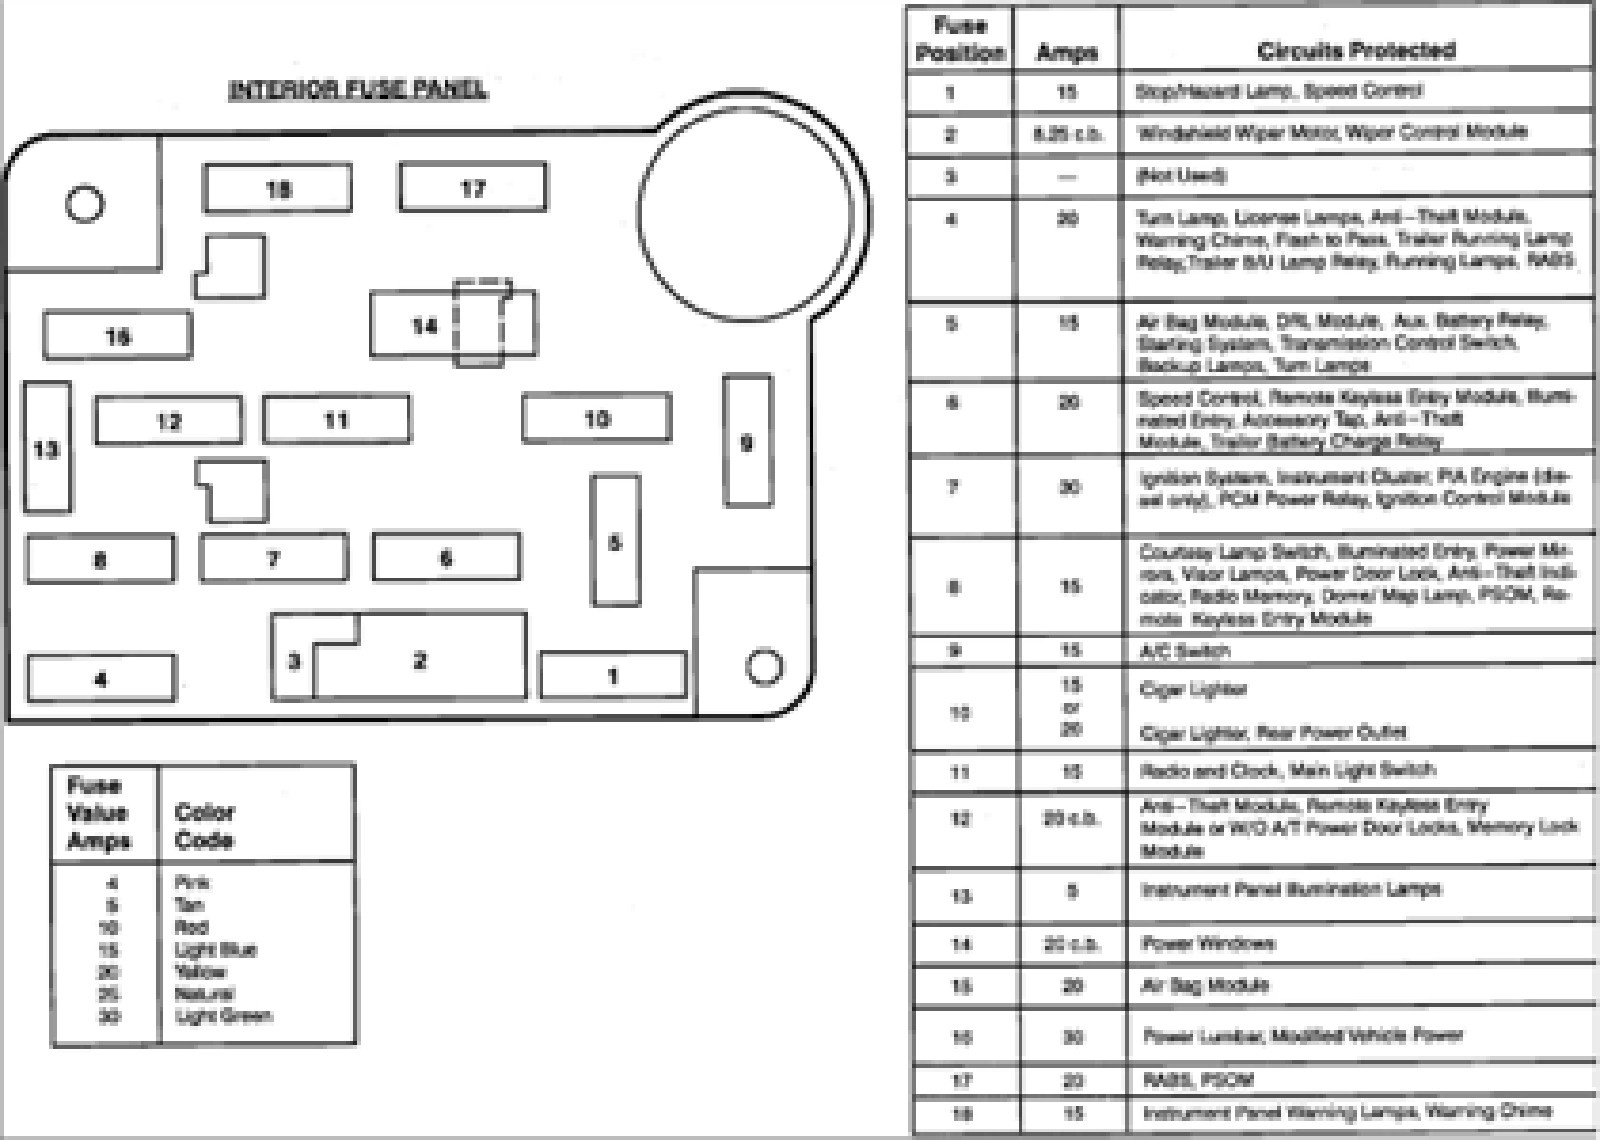 2004 Buick Rendezvous Fuse Box Diagram Quotes Wiring